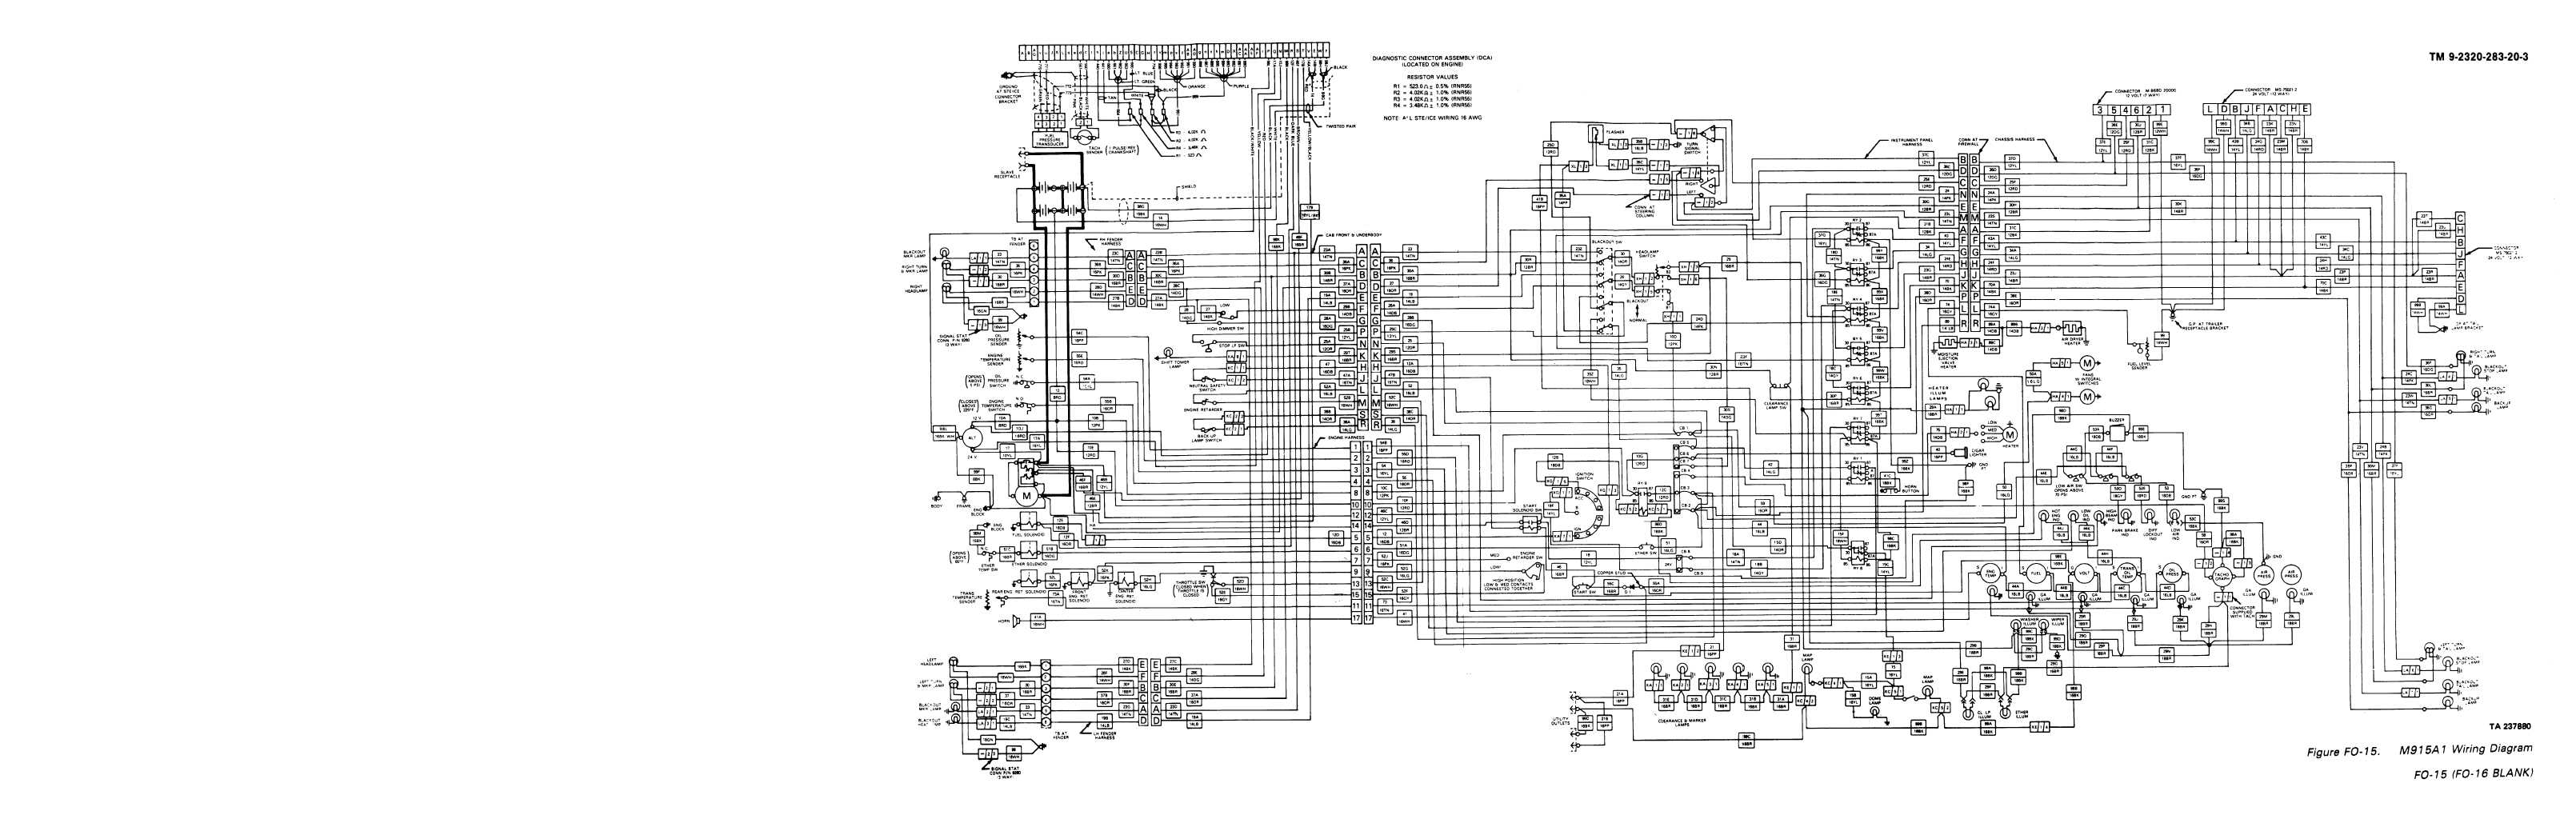 Wiring Diagrams 1 Of 15